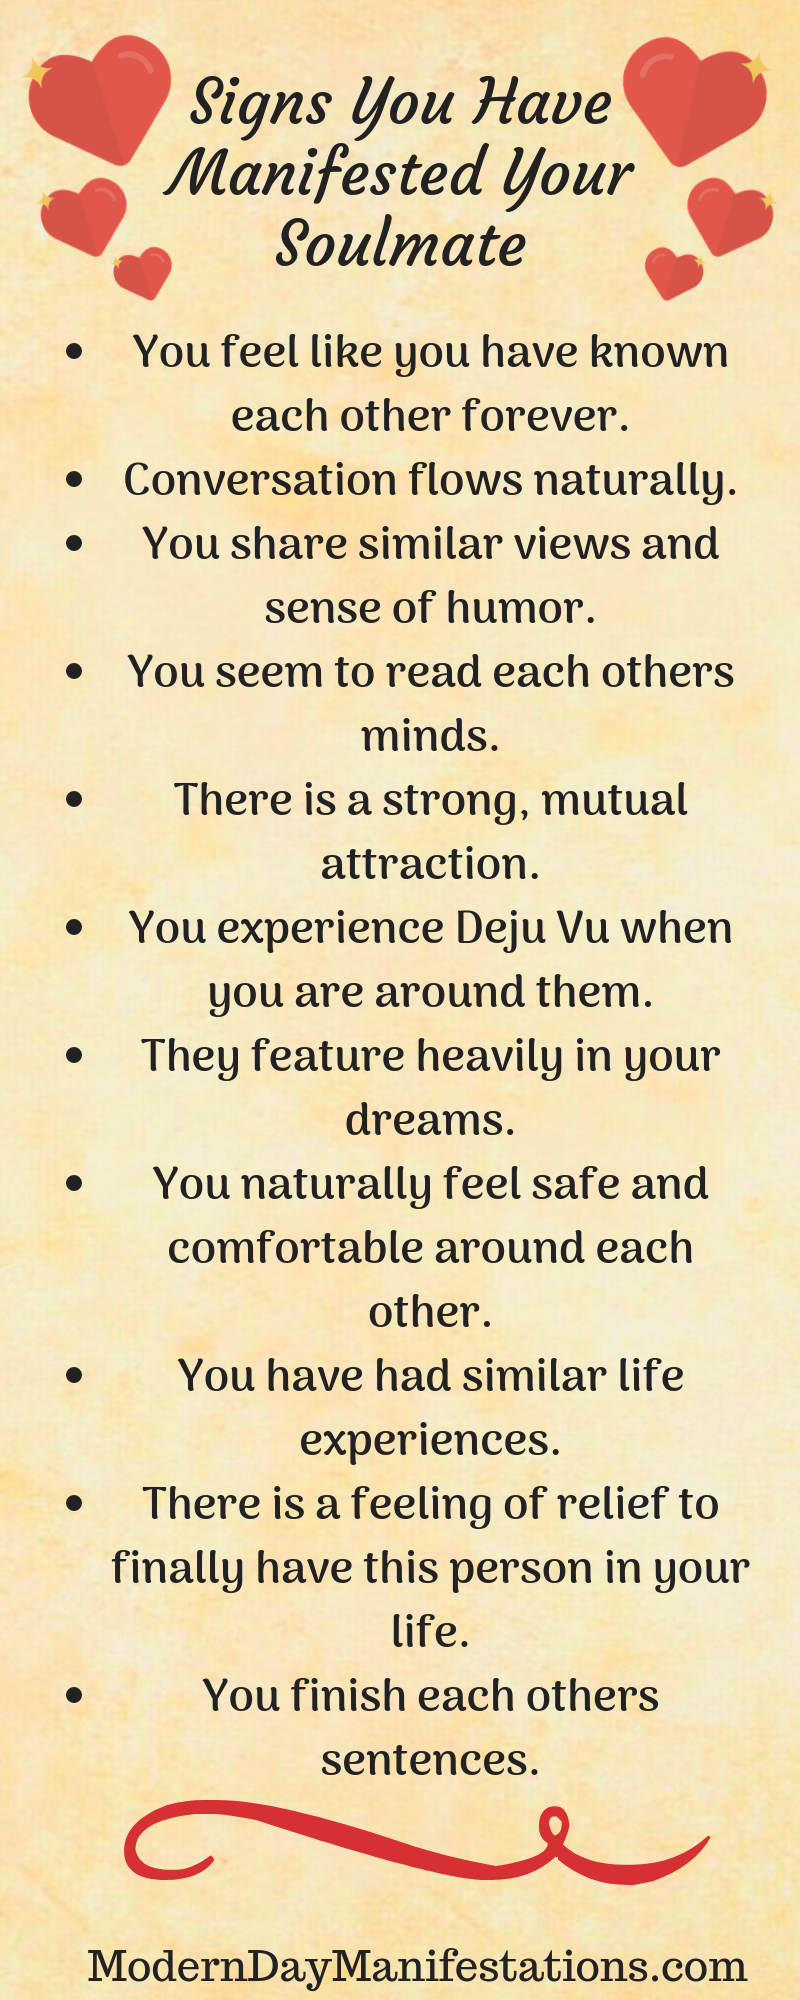 Manifest your soulmate